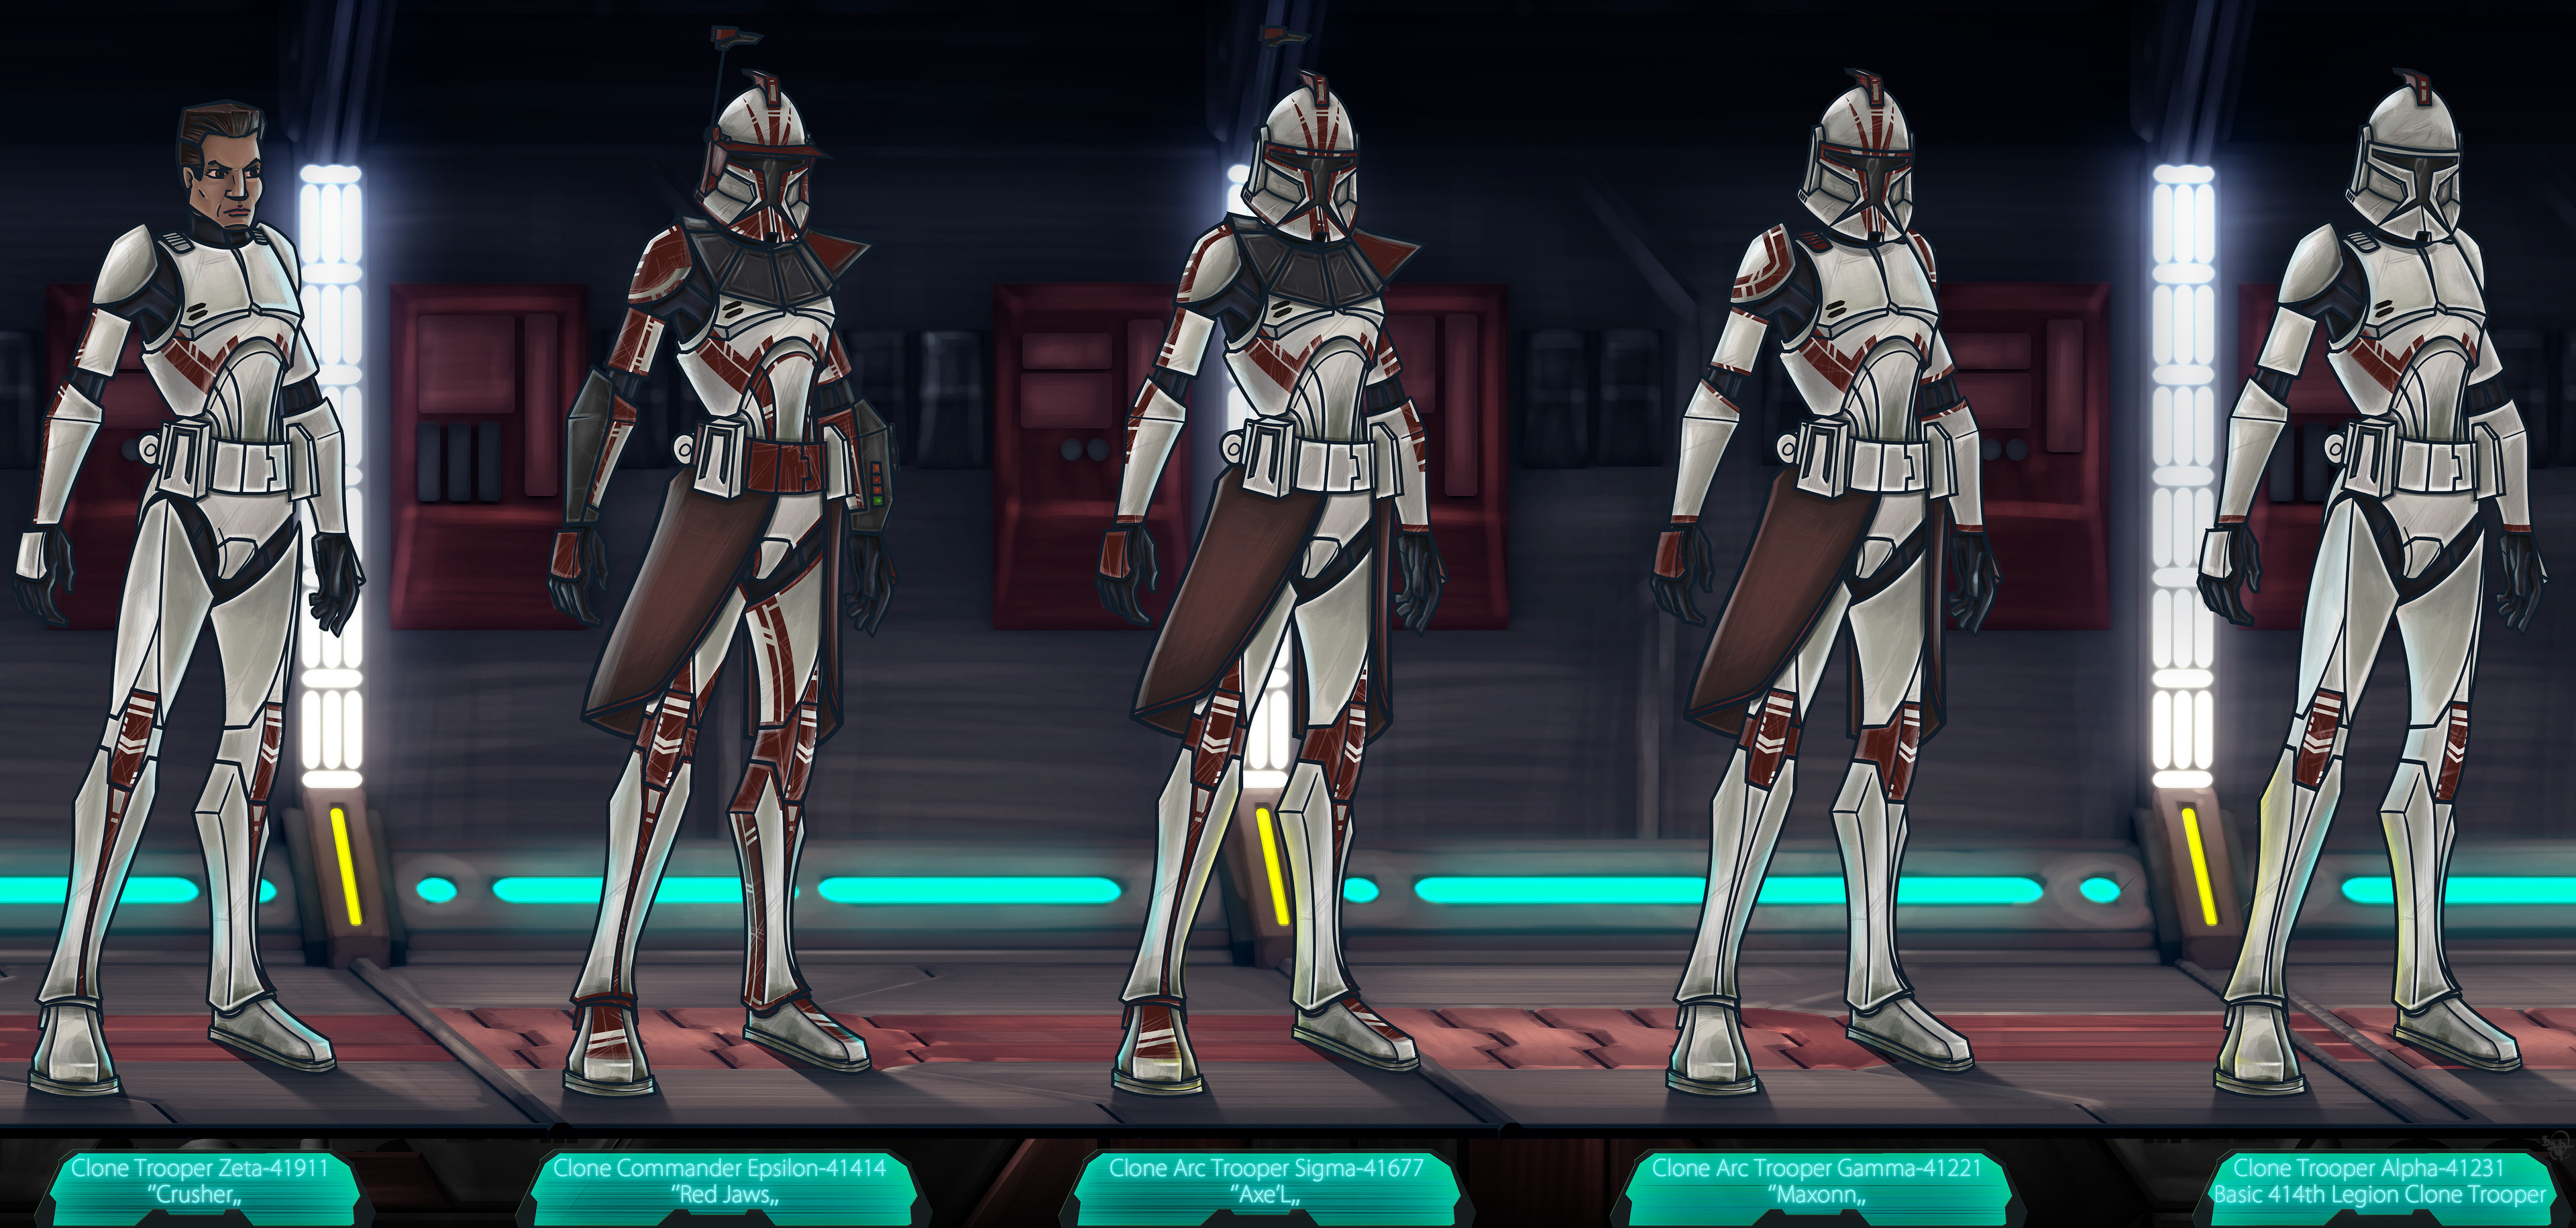 414th Legion ( Mevenn's Army ) CT & ARC Troopers - Done with Mischief